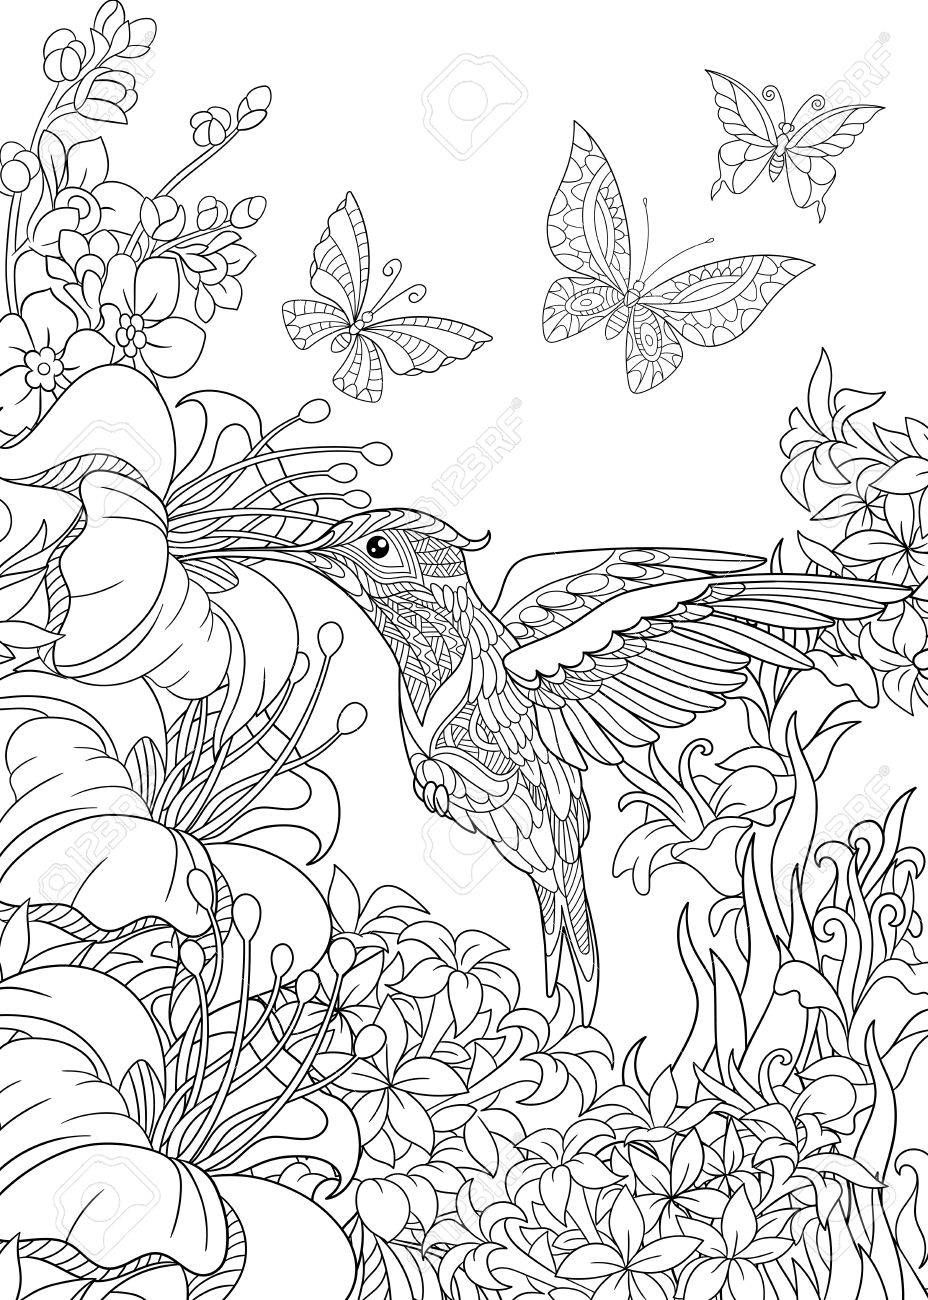 Coloring Page Of Hummingbird Butterflies And Hibiscus Flowers Freehand Sketch Drawing For Adult Antistress